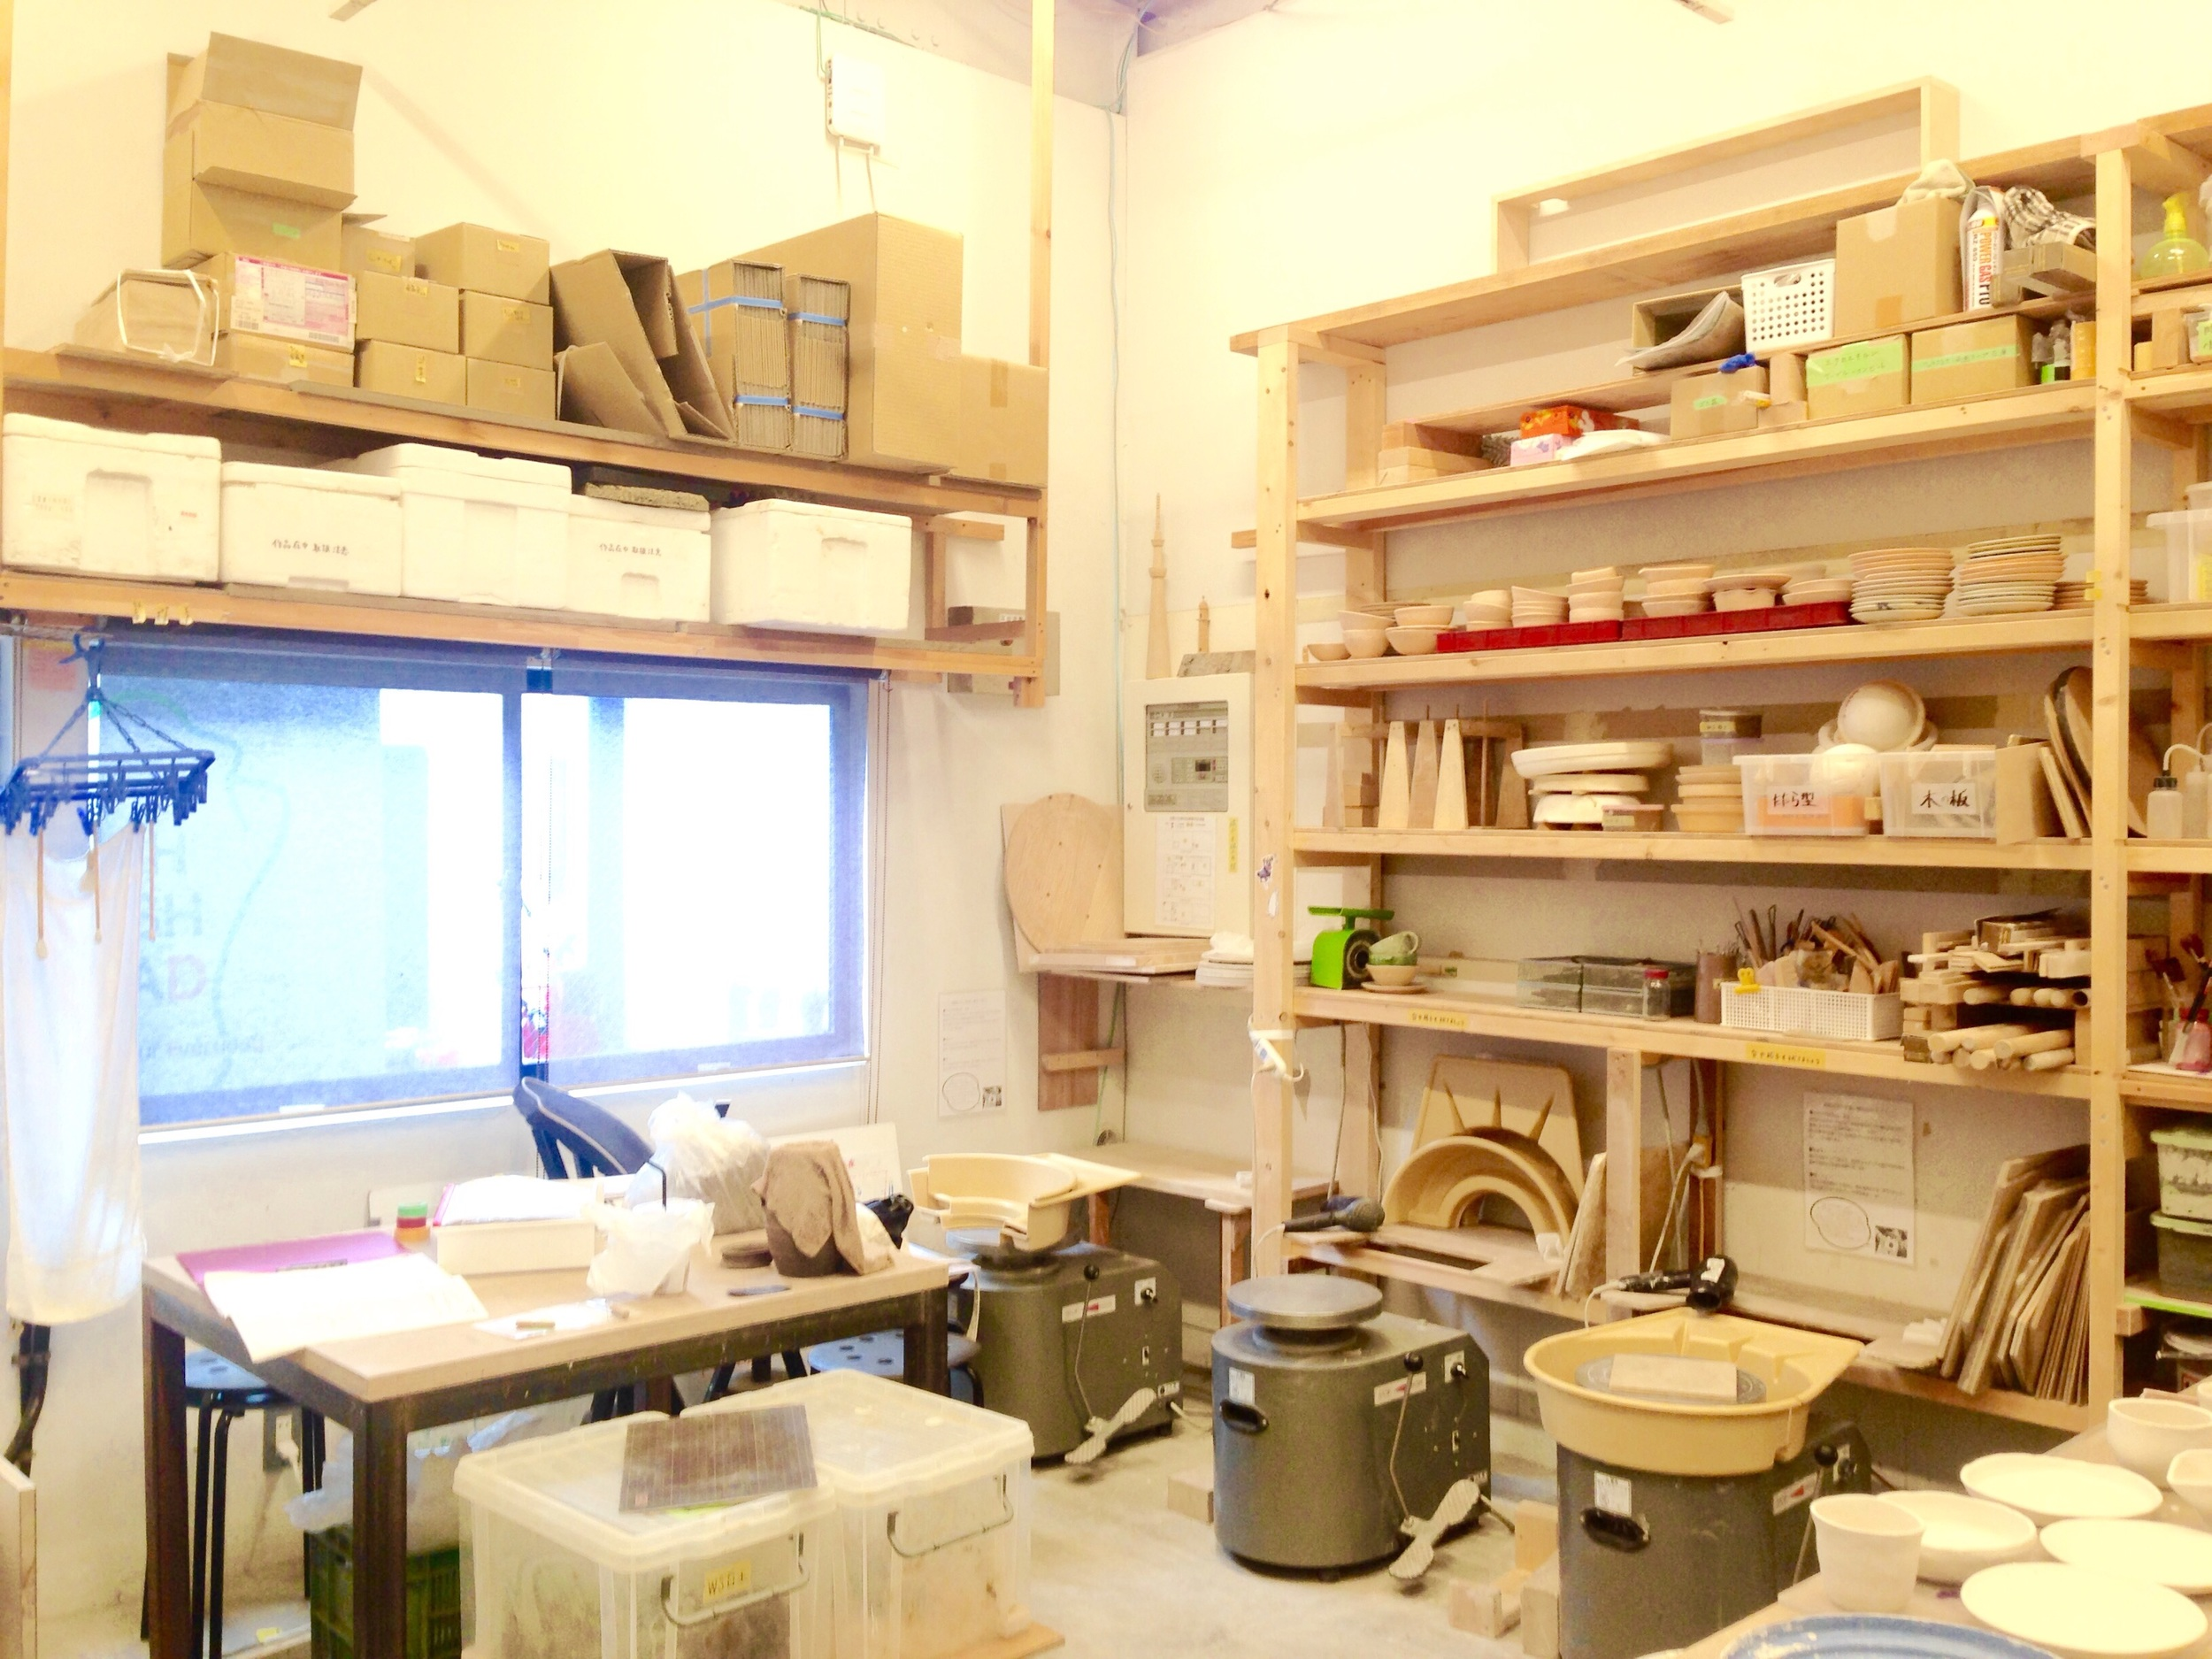 Ceramic workspace